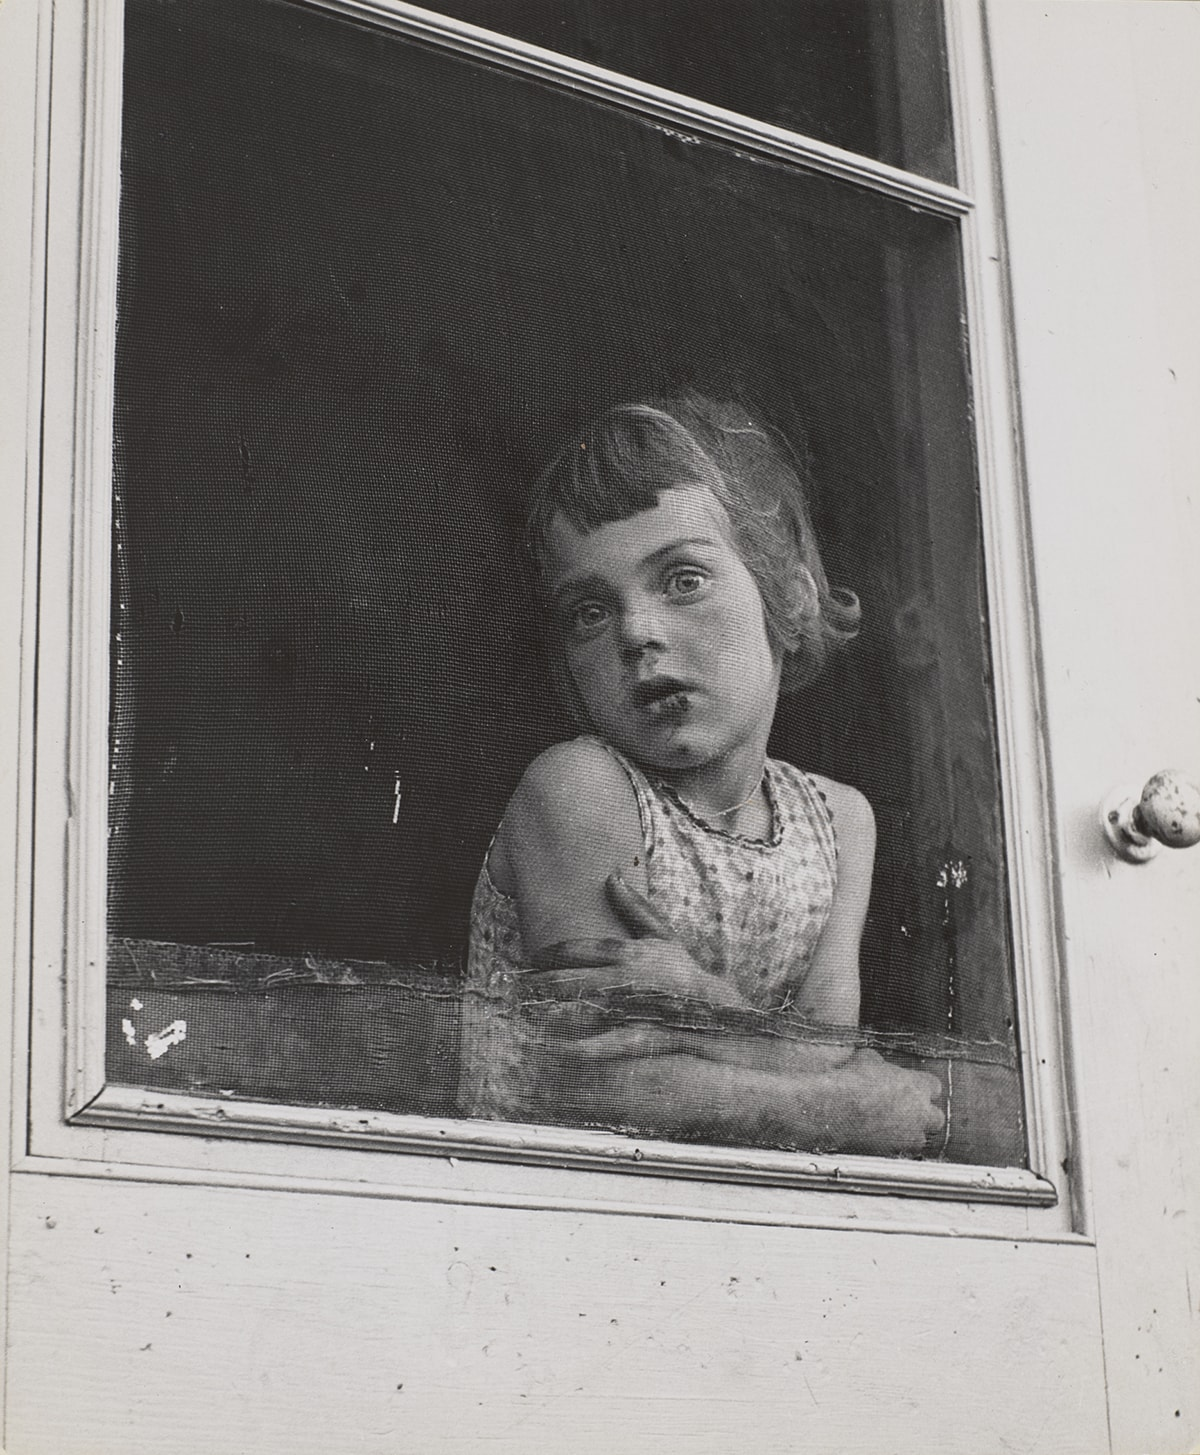 A vertical, rectangular, black-and-white photograph, featuring a young, light-skinned child at center. She leans, arms folded across her upper waist, on the inside of a patched and worn screen door, gazing through the screen and outside to the photographer/viewer. The interior space behind her is dark and without detail. The light gray door frame is seen along both the bottom and right edges of the image. A worn, chipped doorknob is on the door frame to the left of the figure at shoulder height. Her head is turned to the left, her chin touching her right shoulder. Her bobbed hair is chin-length with short, uneven bangs, and she wears a sleeveless, printed shirt. Dark areas appear on her mouth, nose and chin suggesting a scrape from a fall.